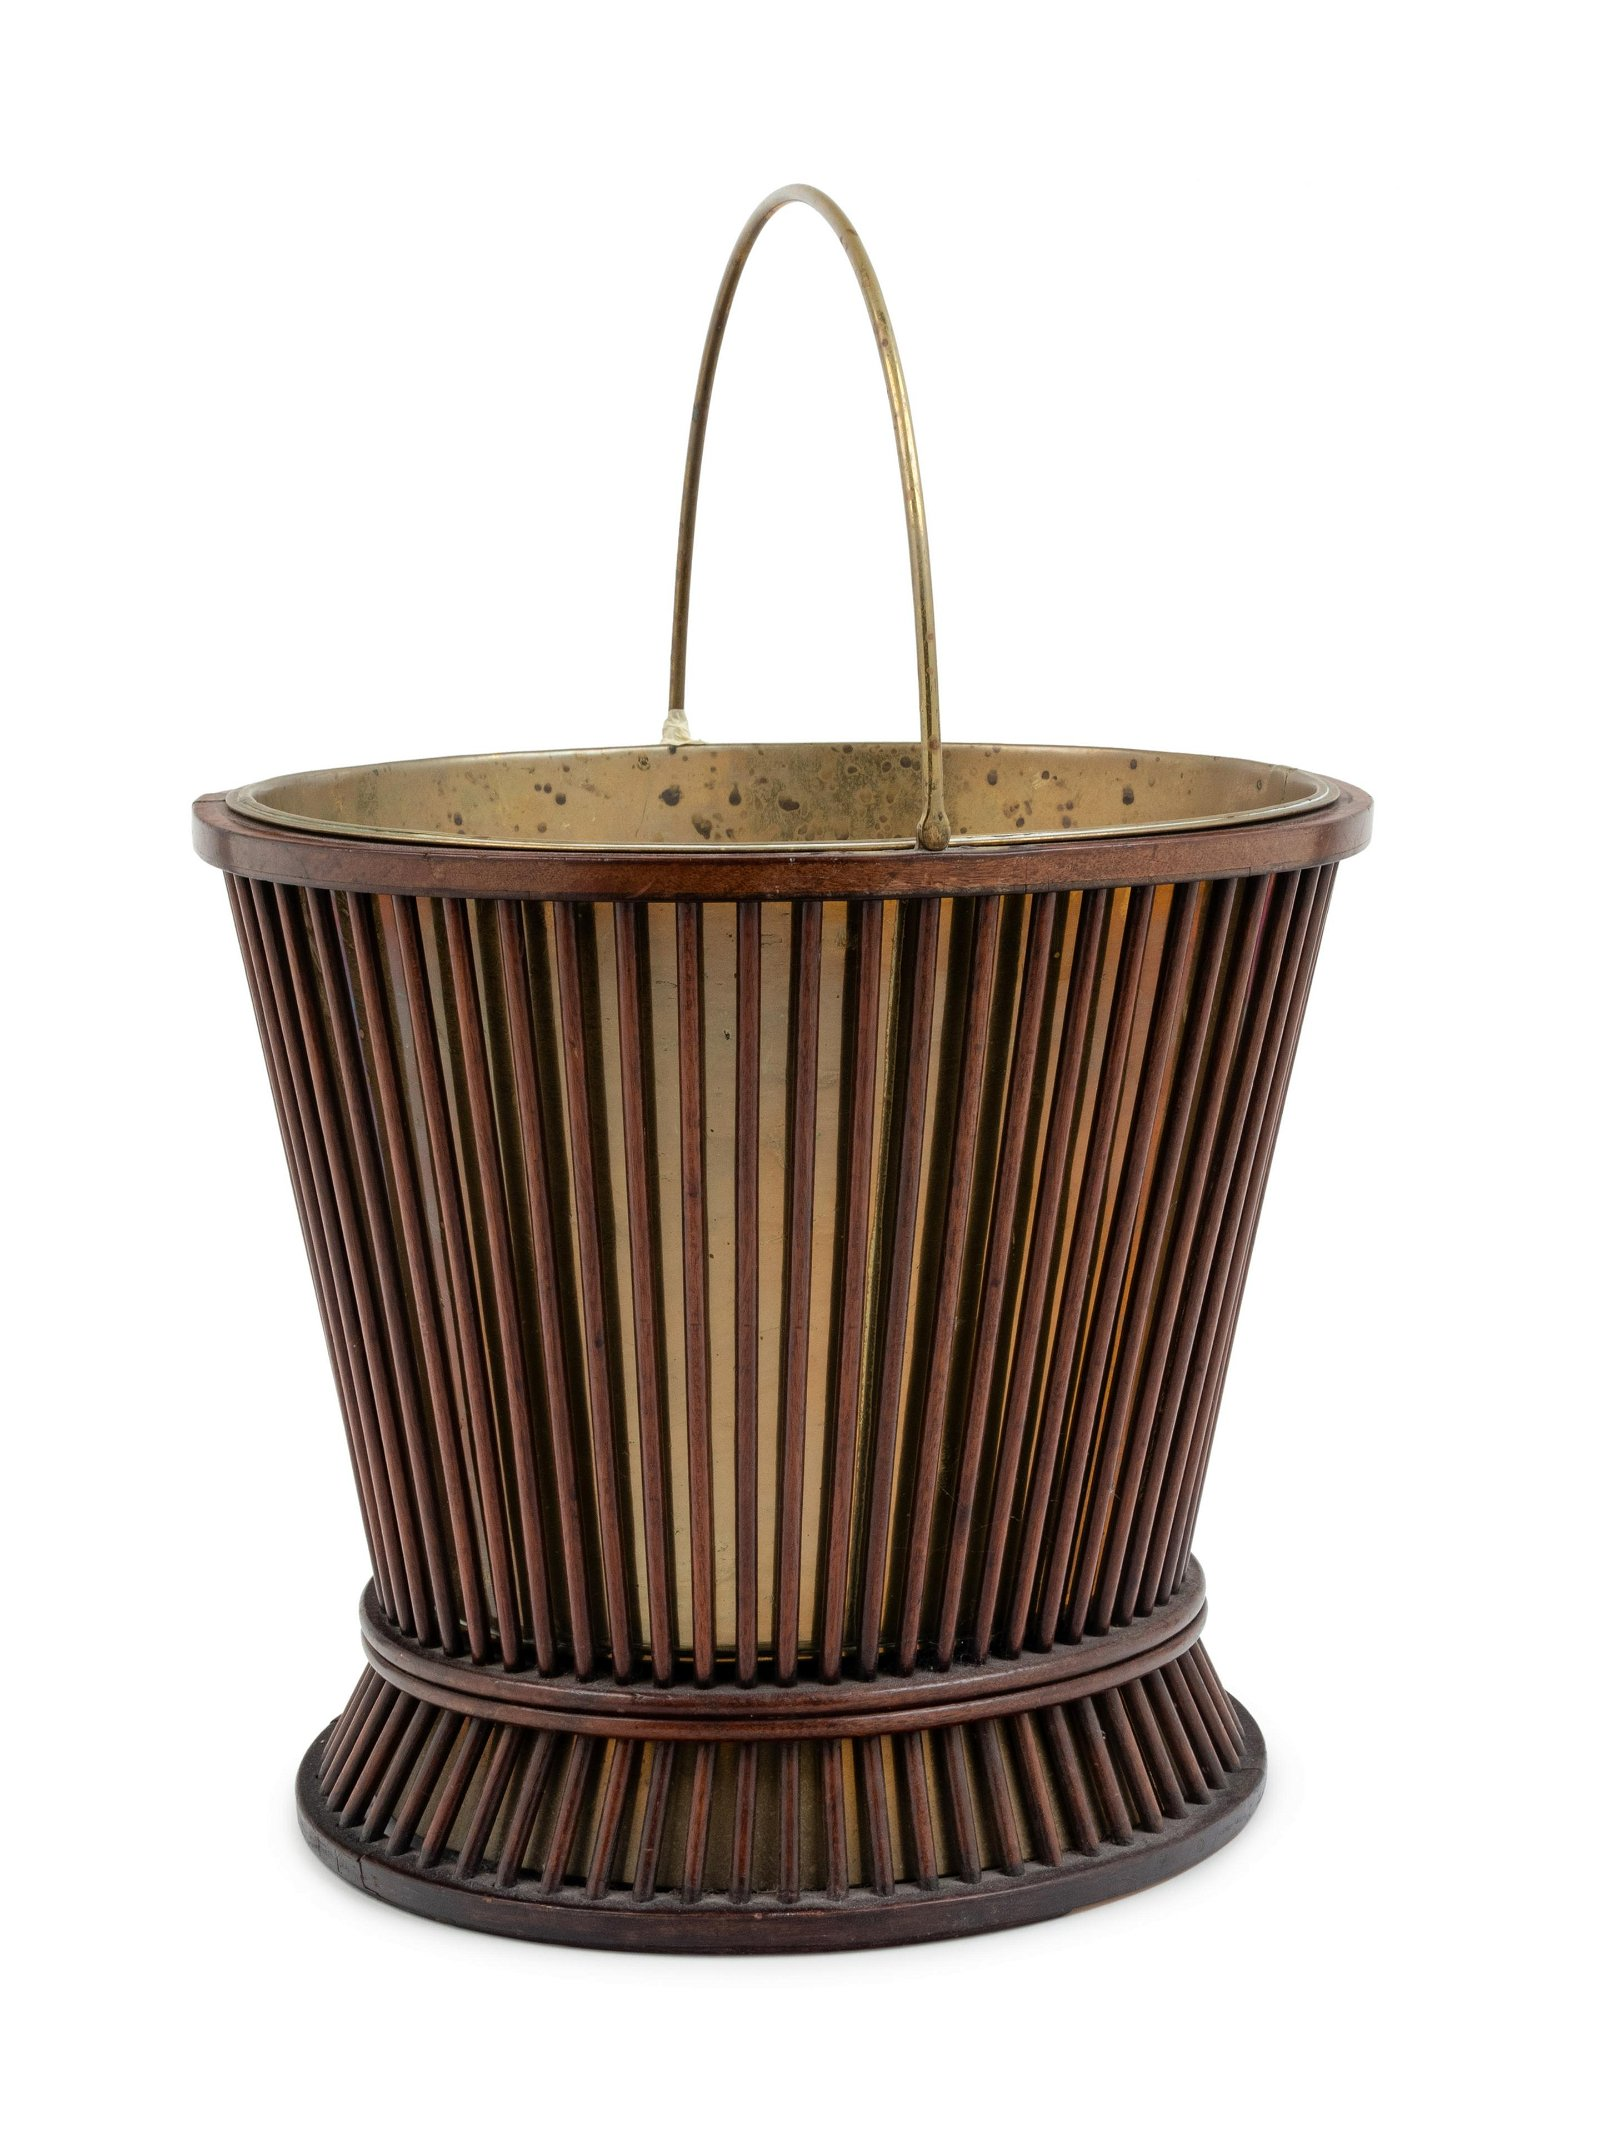 A George III Mahogany and Brass Peat Pail